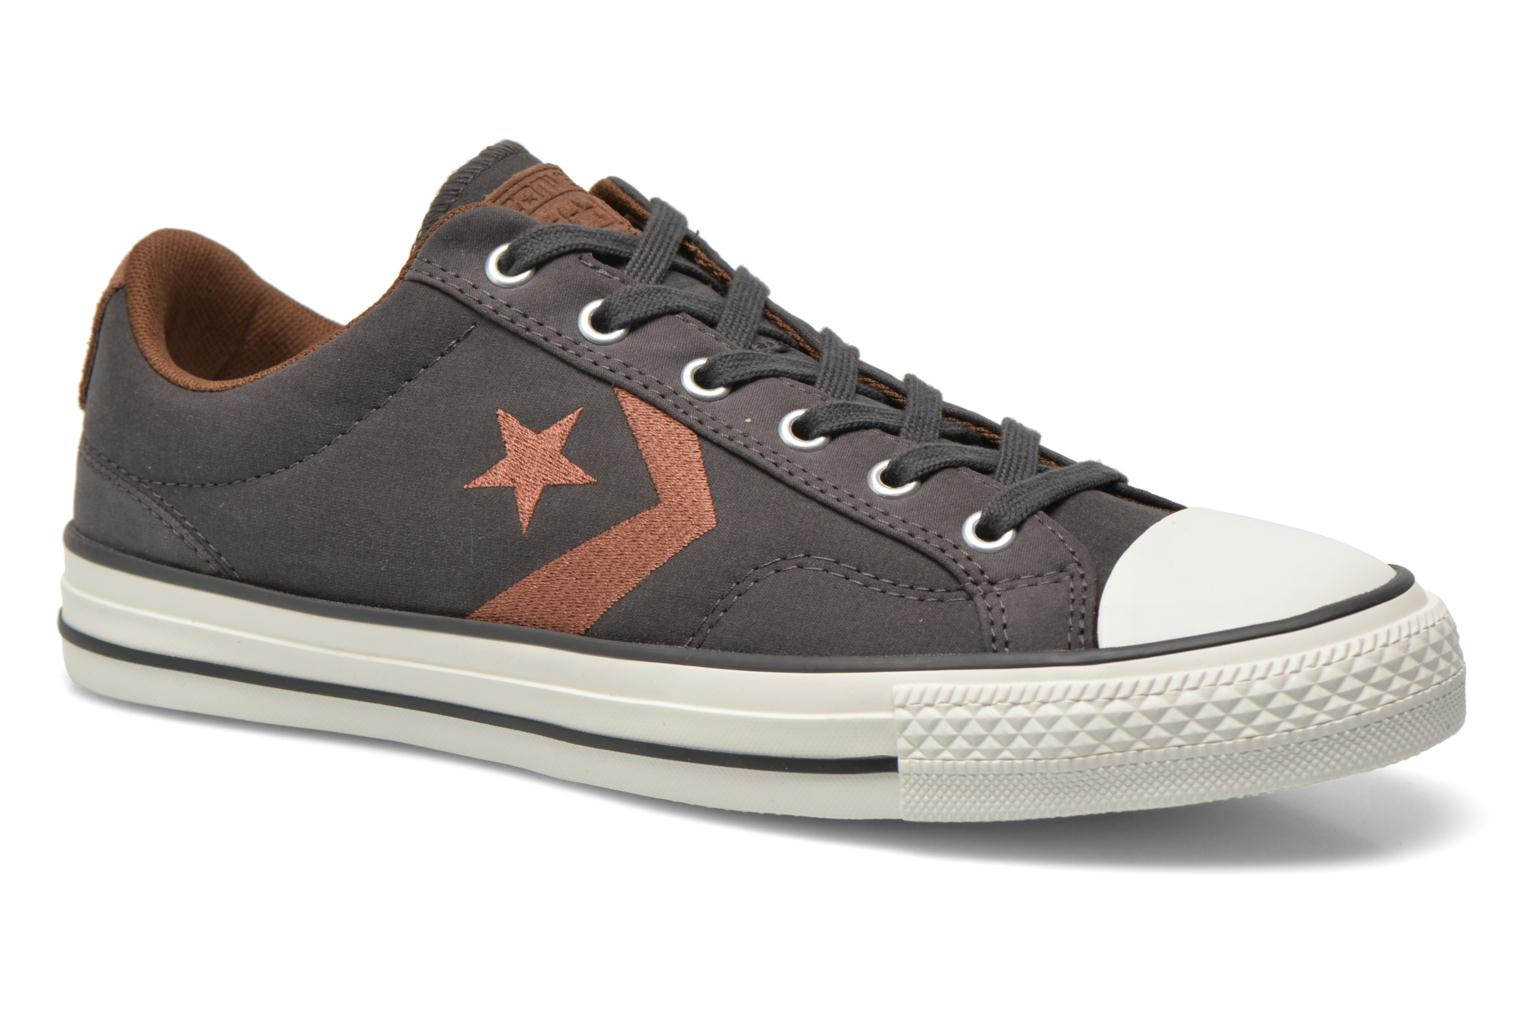 Chaussures Star Player Ox Storm Wind/Chocolate - Converse iXvwNkp